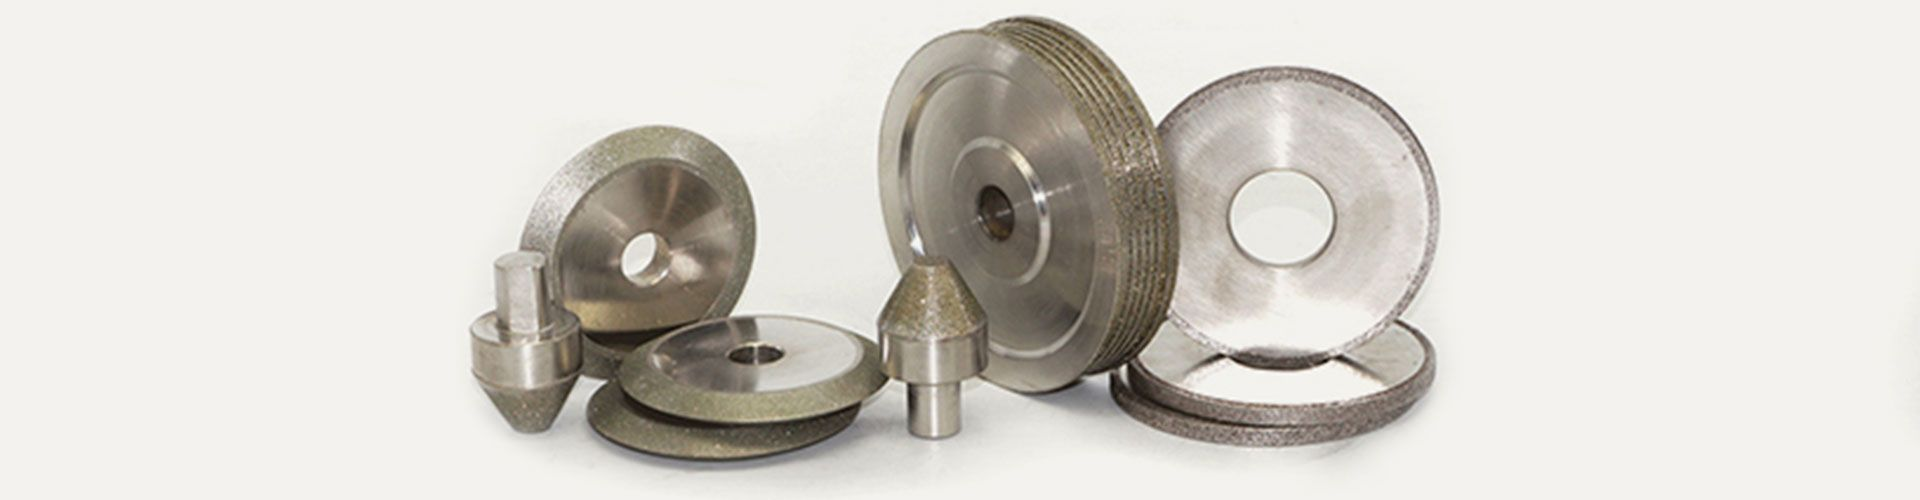 Electroplated Grinding Wheel Power Tool Accessories Electric Power Tools Electroplating